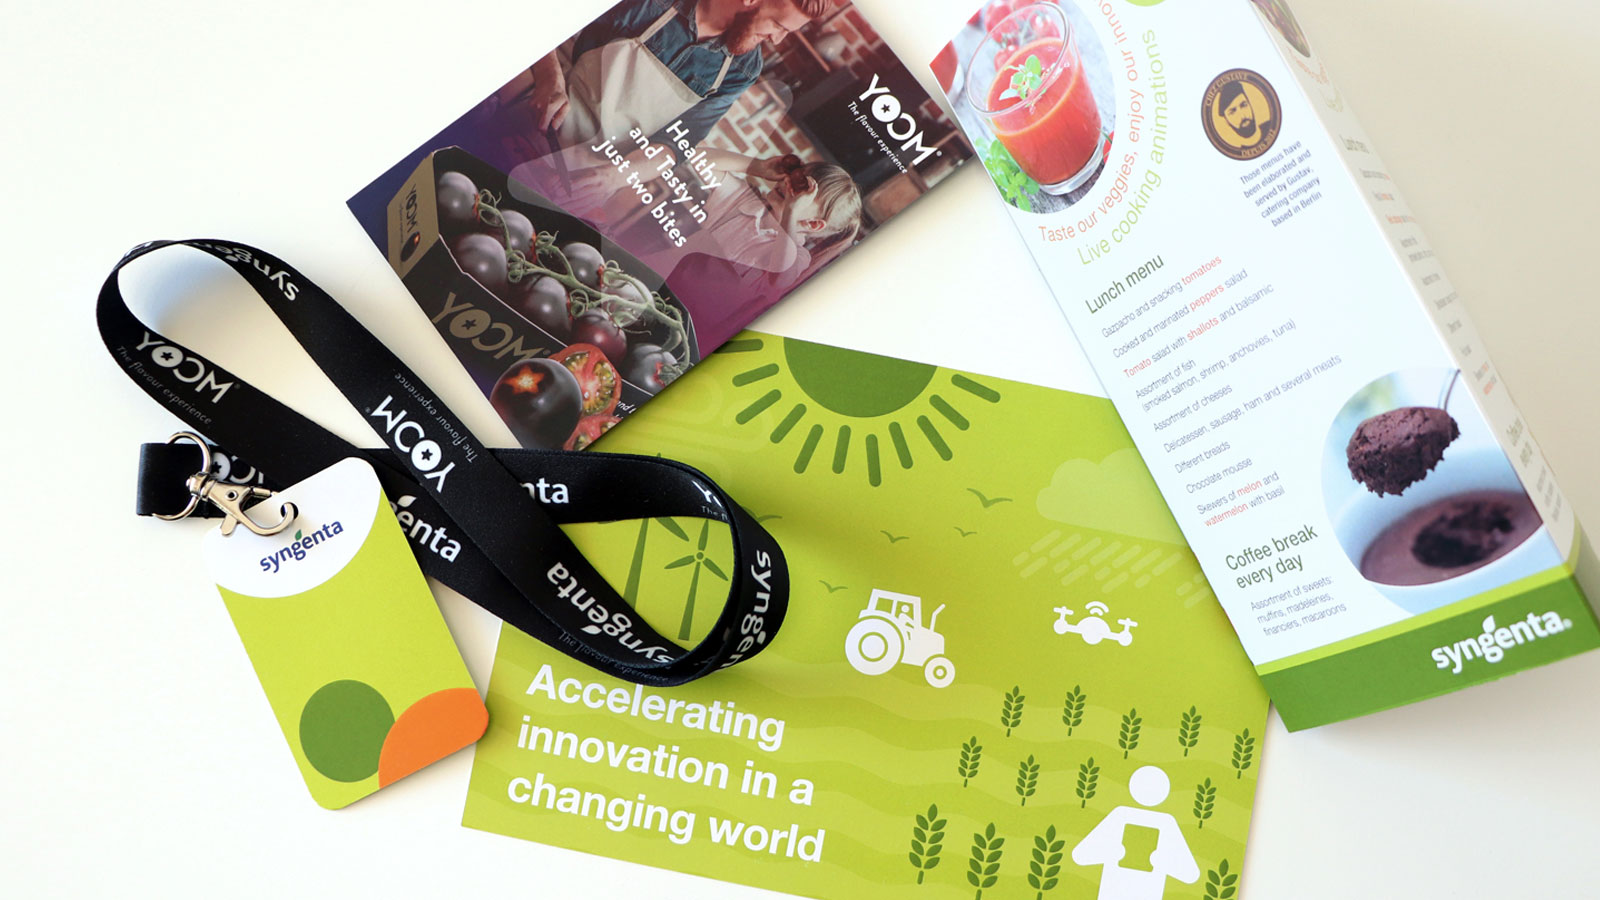 Marketing-Print-Edition-Lanyard-Syngenta